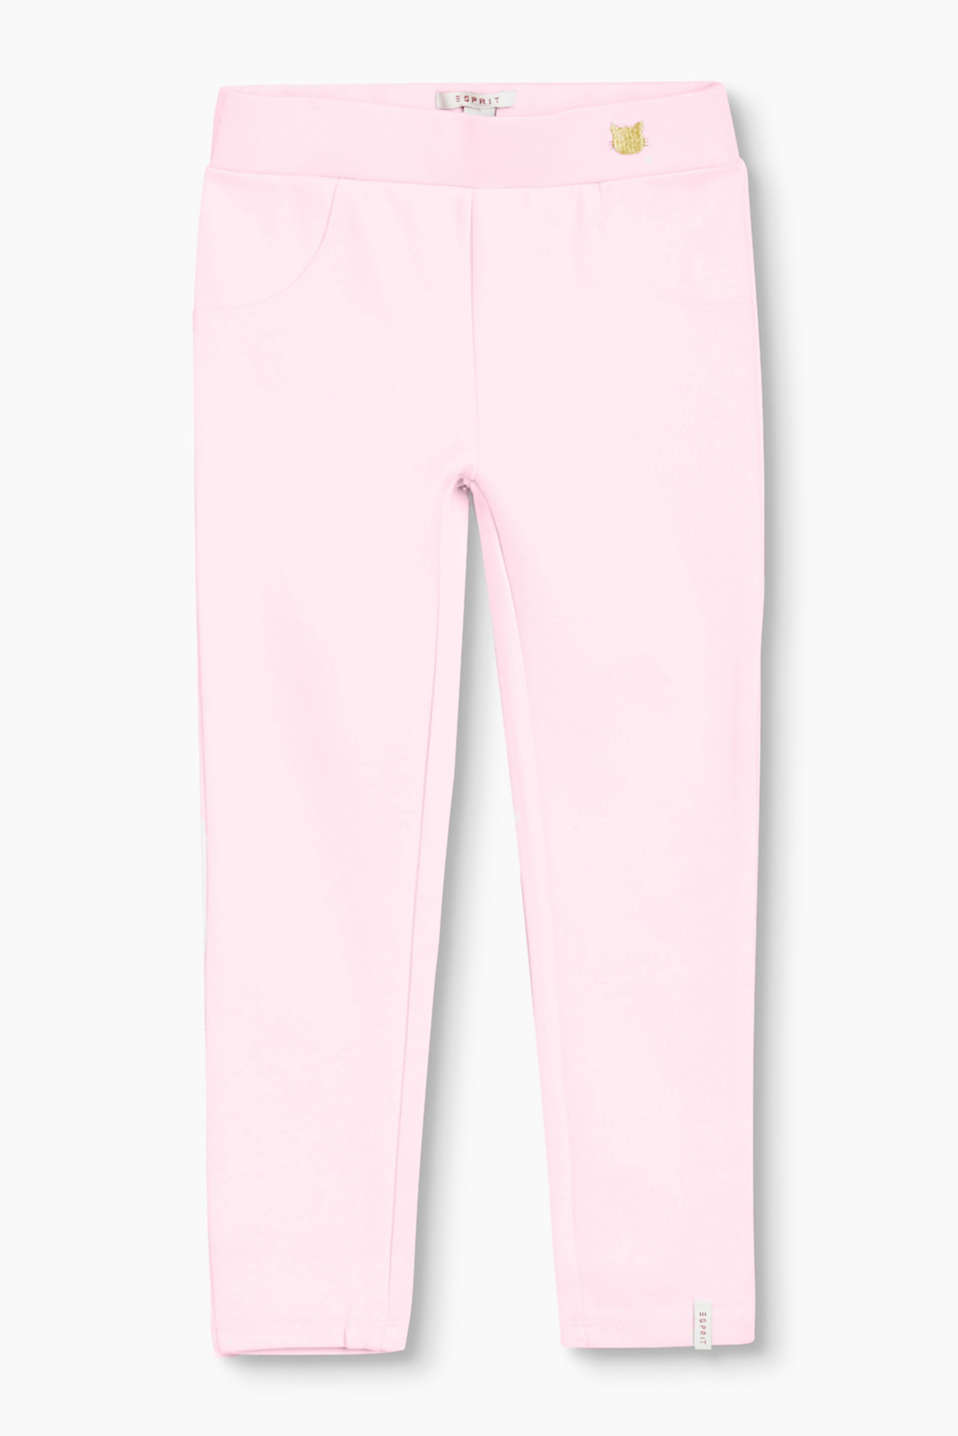 Leggings with added stretch for comfort, with a wide waistband and cat stitching